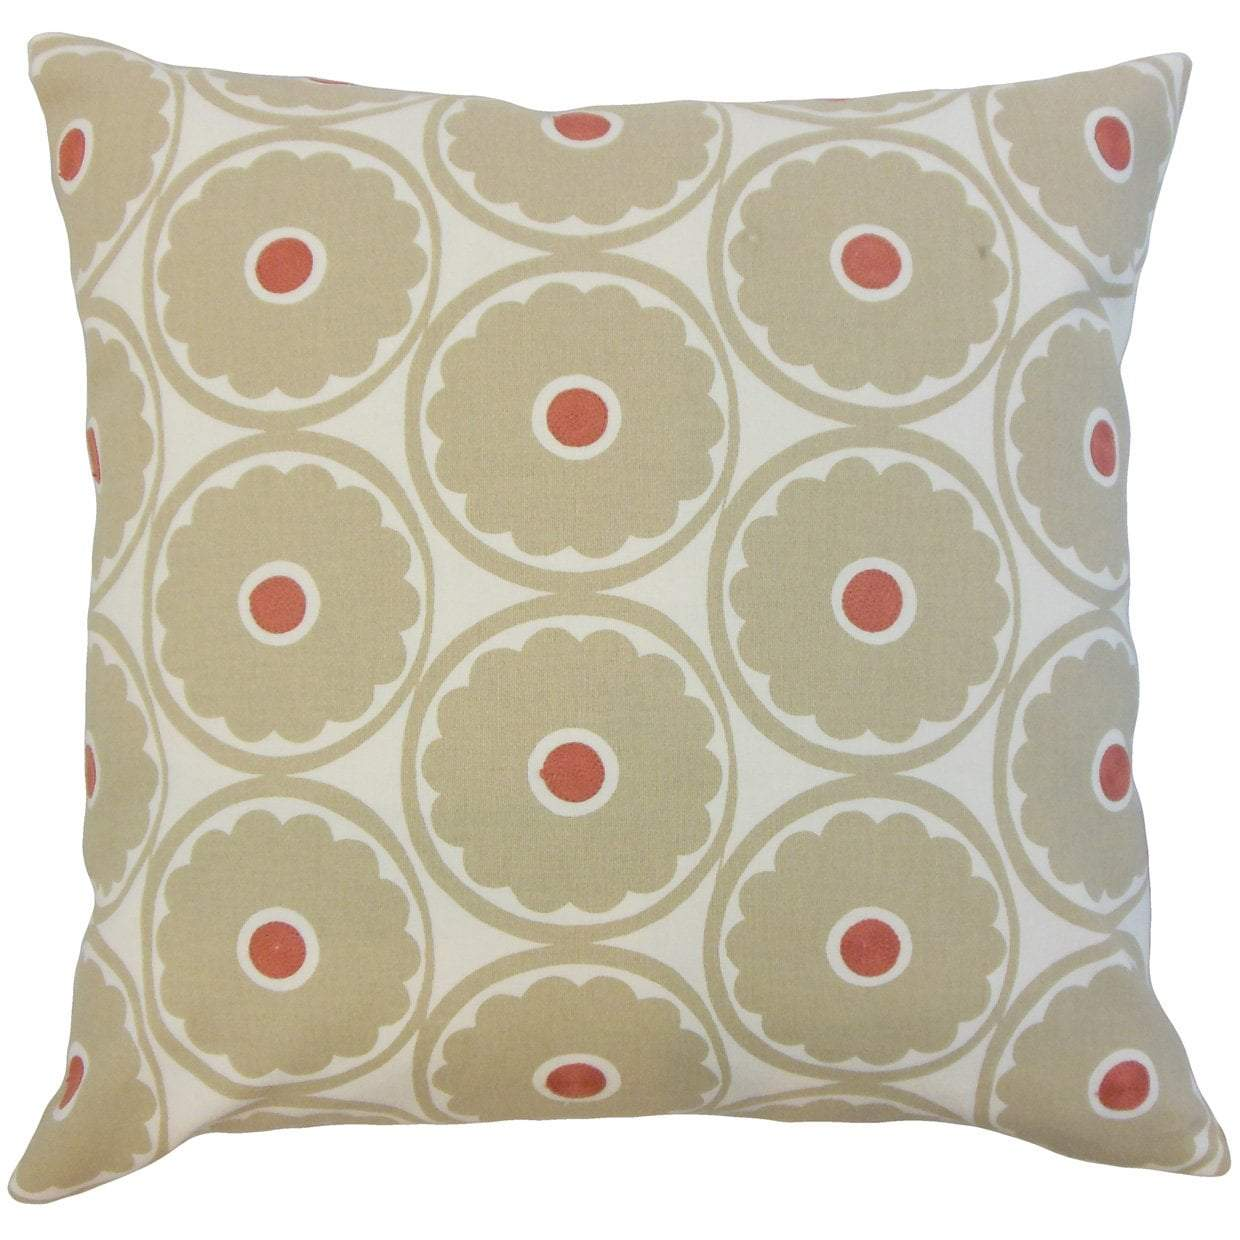 Brown Cotton Floral Contemporary Throw Pillow Cover